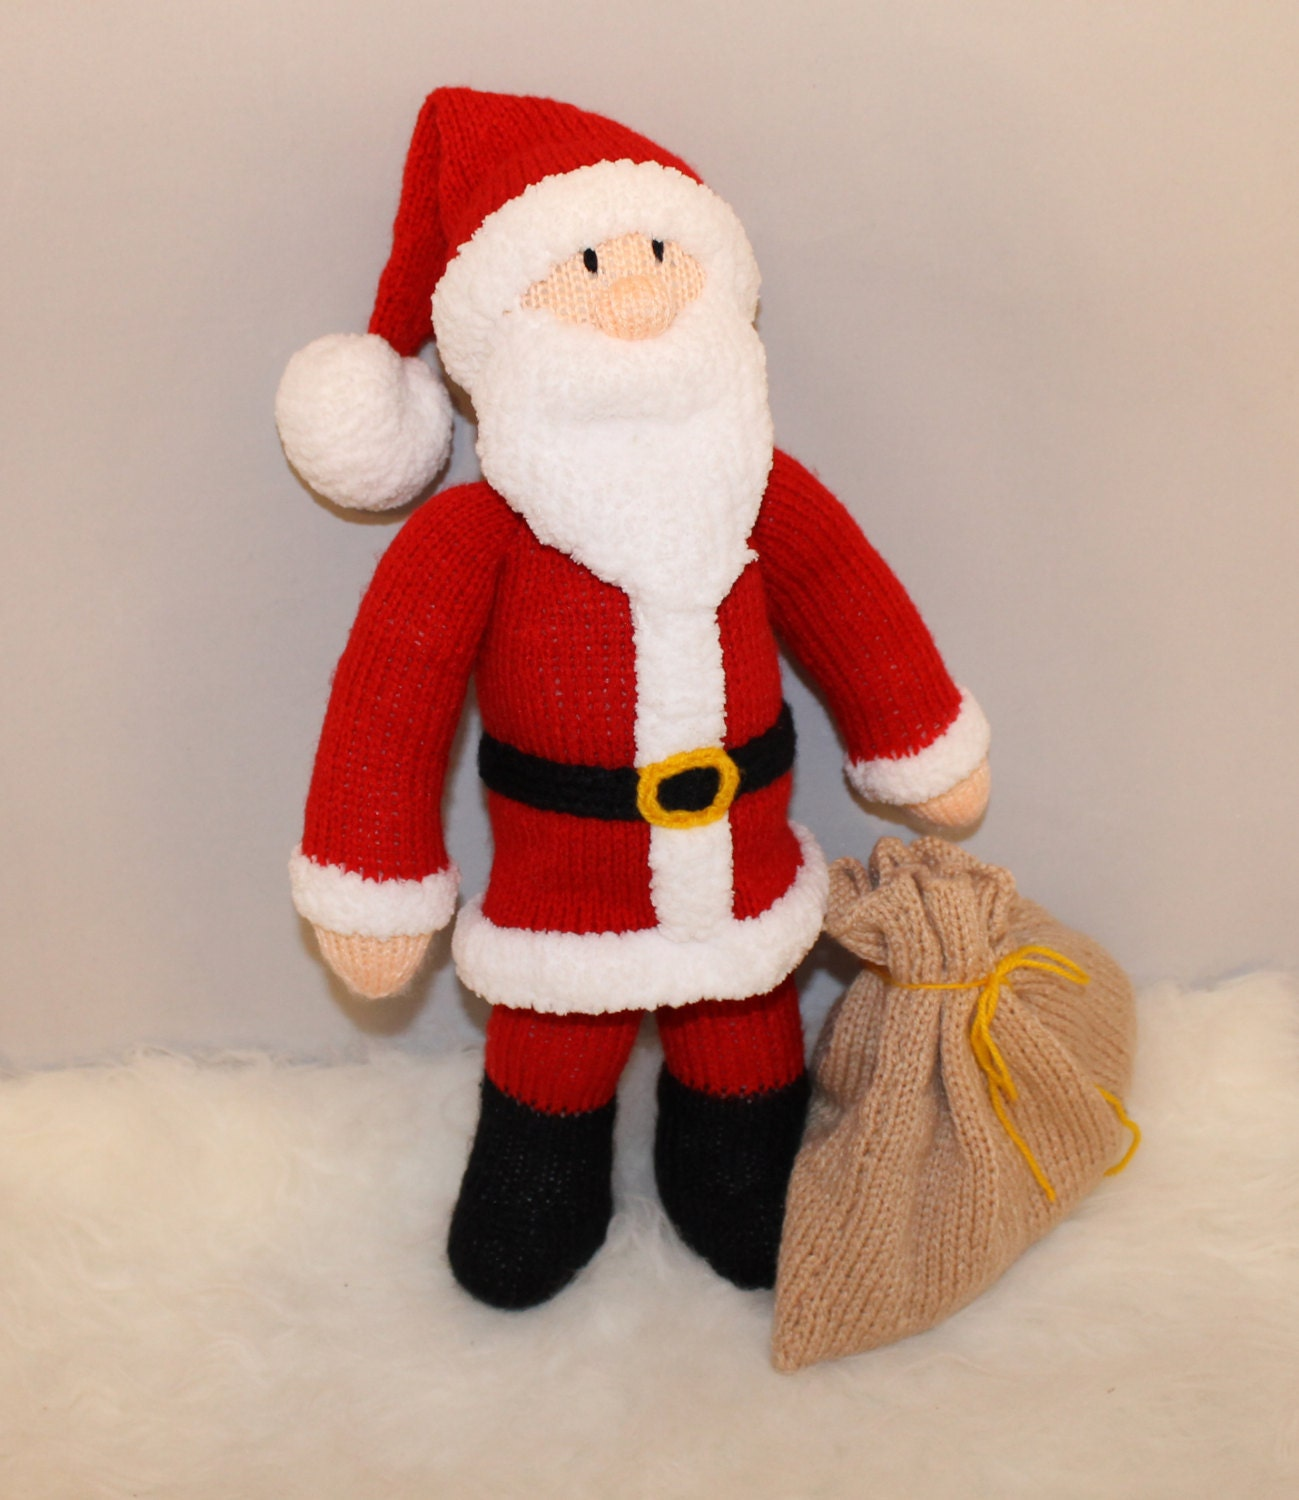 Toys From Santa : Santa claus with two toys in his bag father christmas